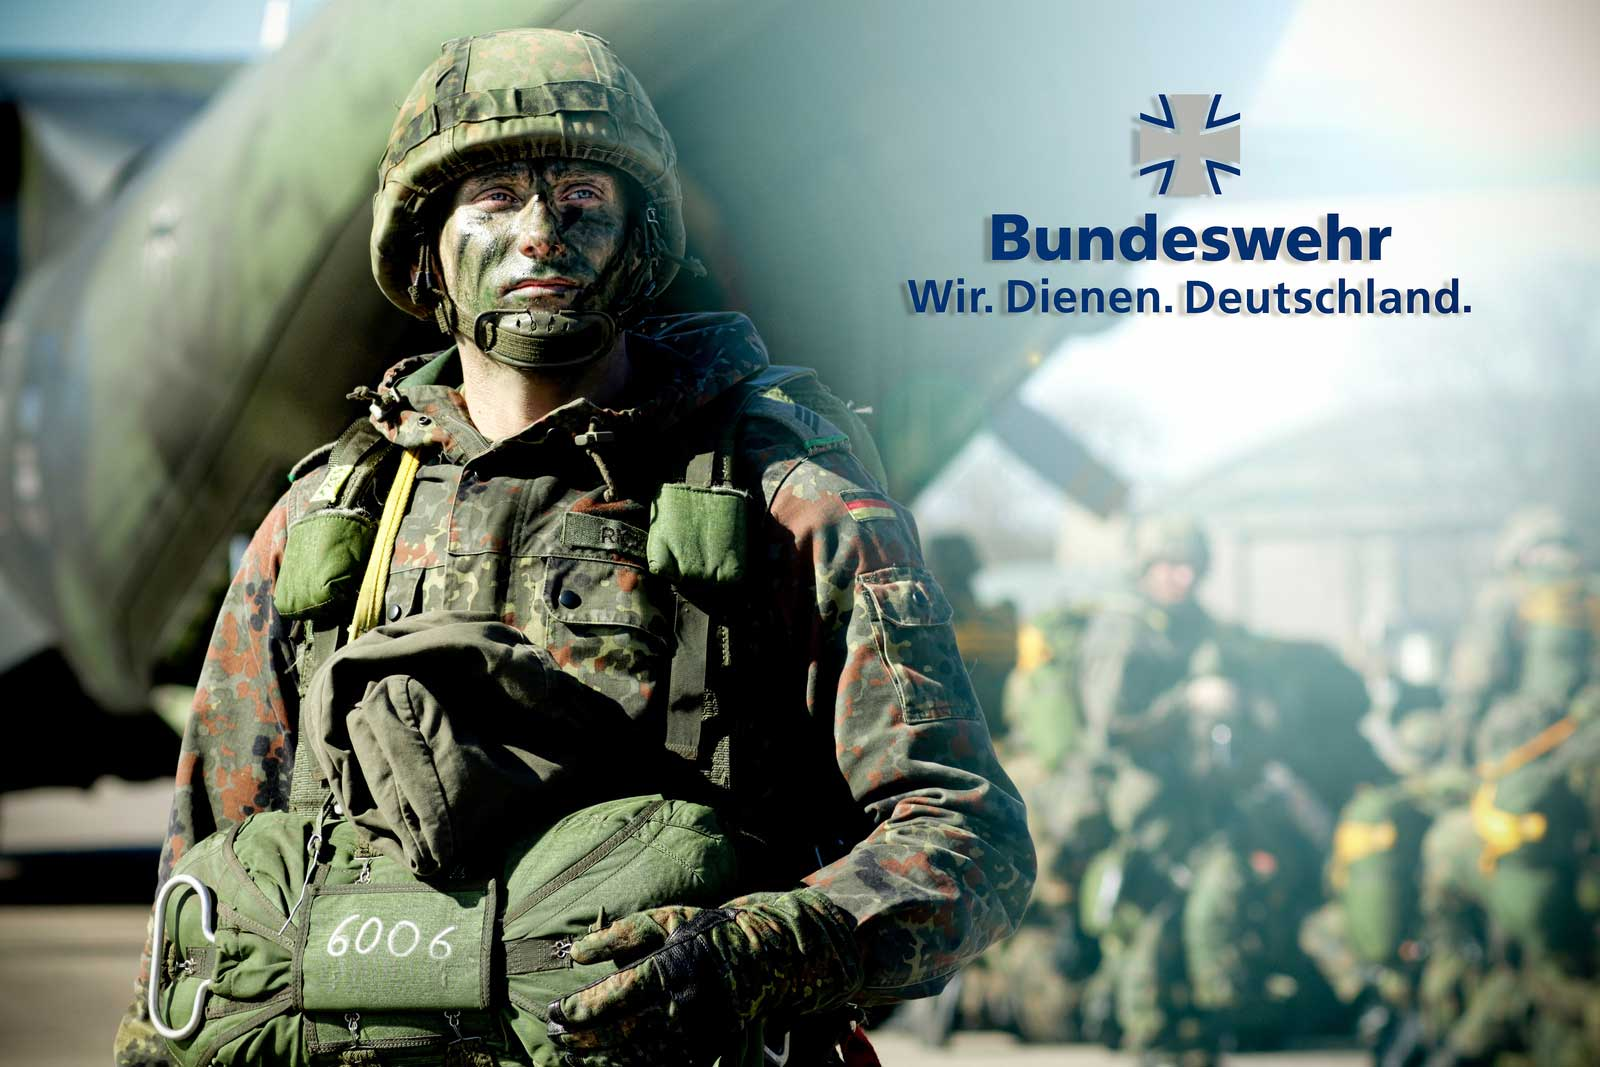 1-1-web-flickr-Bundeswehr-Fotos-CC-BY-ND-2